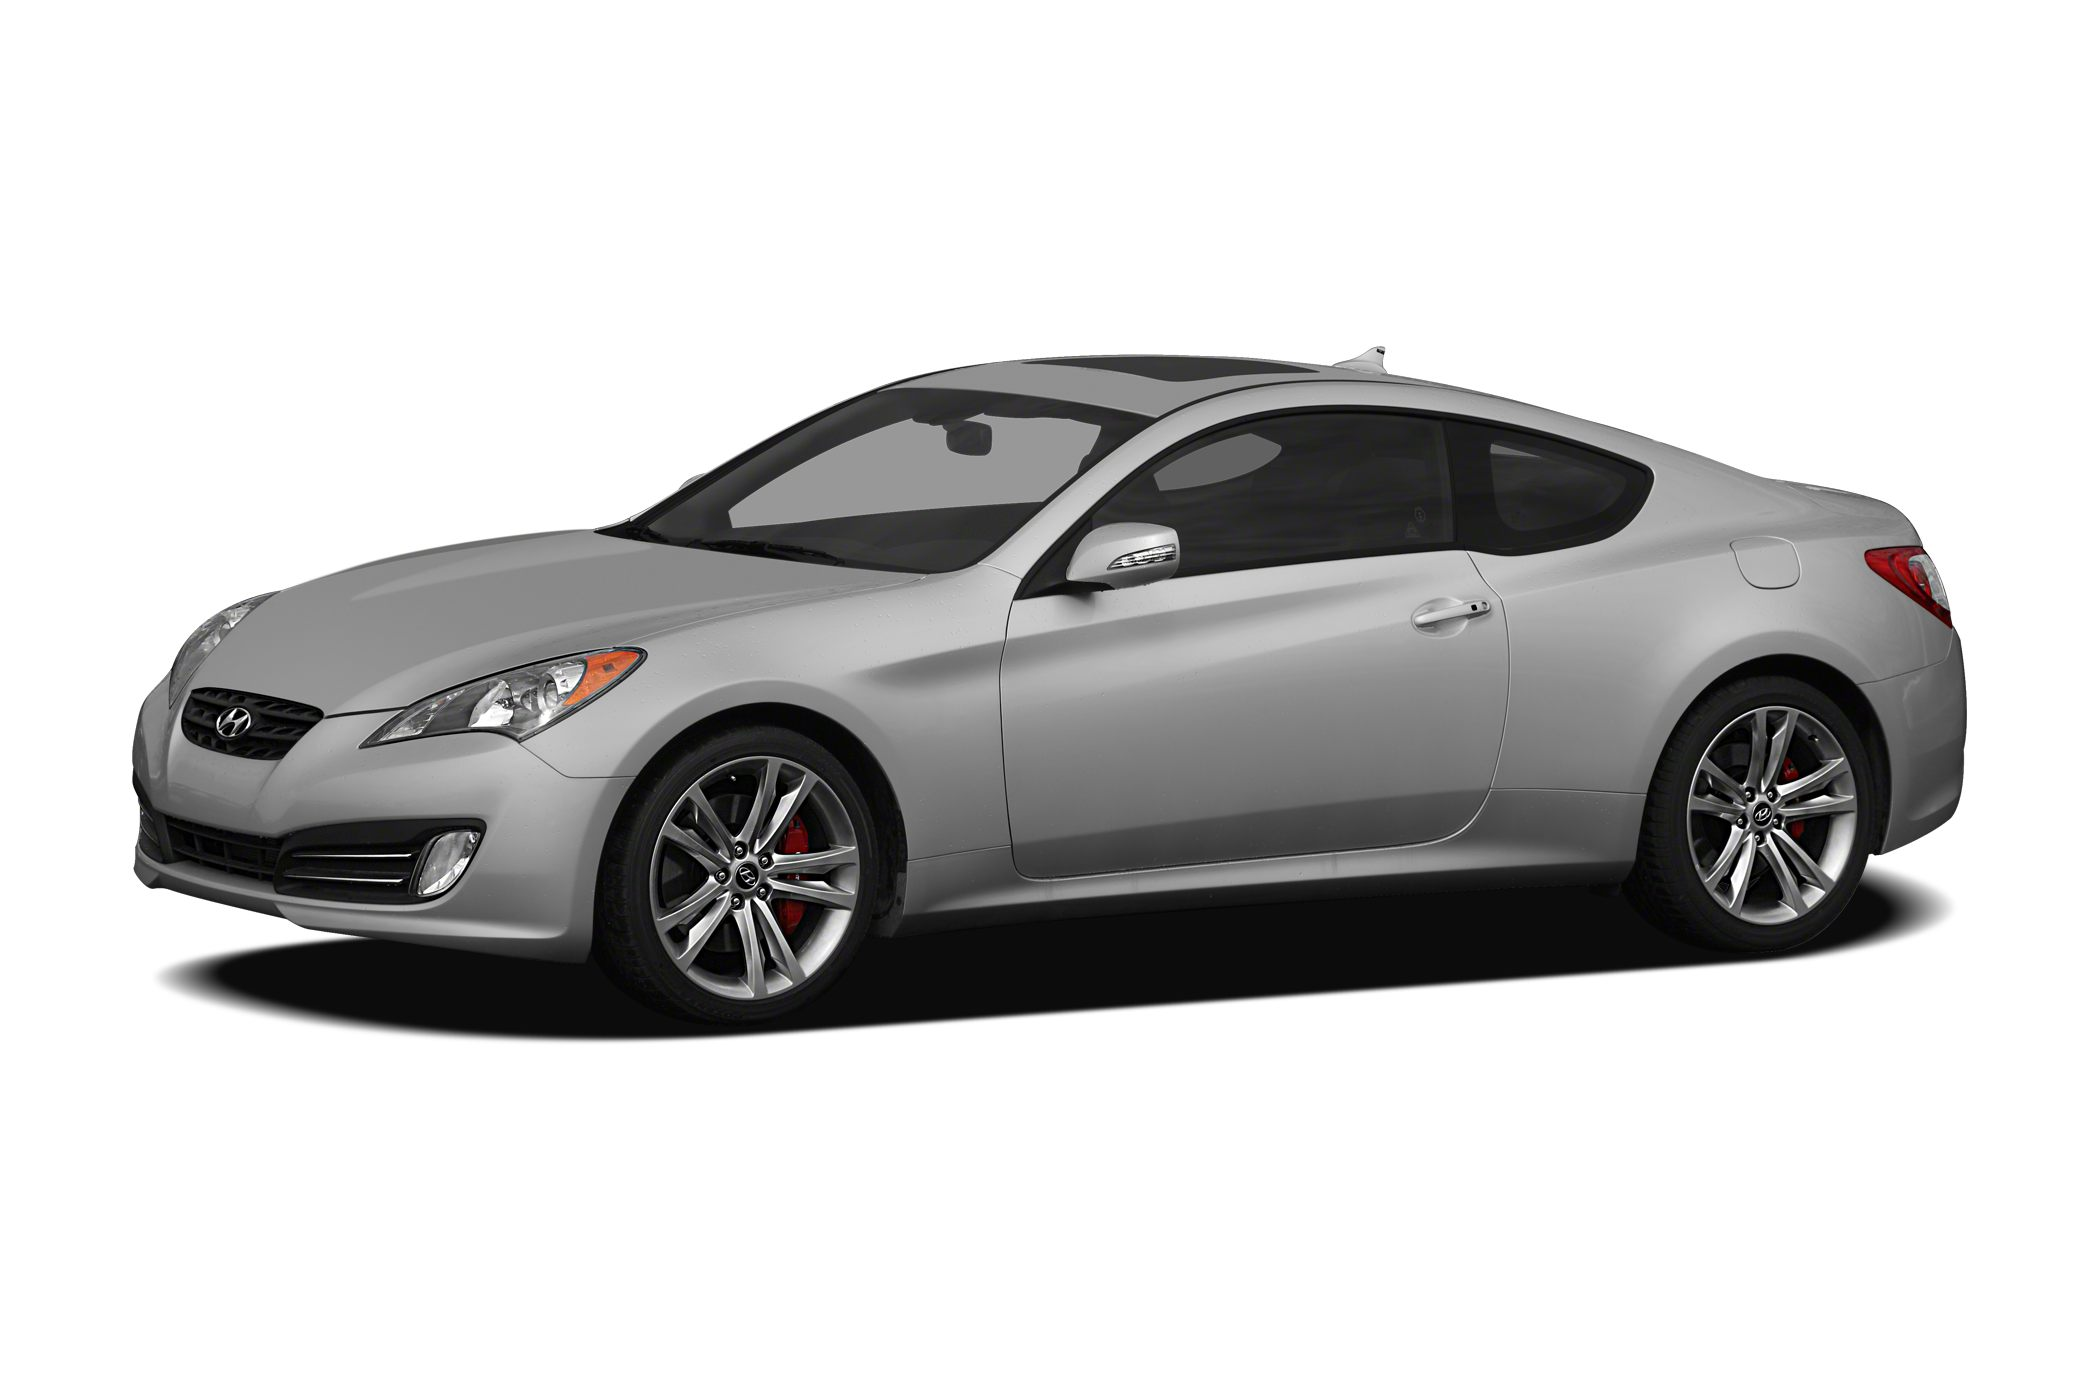 cars for sale near me under 9000 unique used hyundai genesis coupes for sale under 1 000 miles. Black Bedroom Furniture Sets. Home Design Ideas